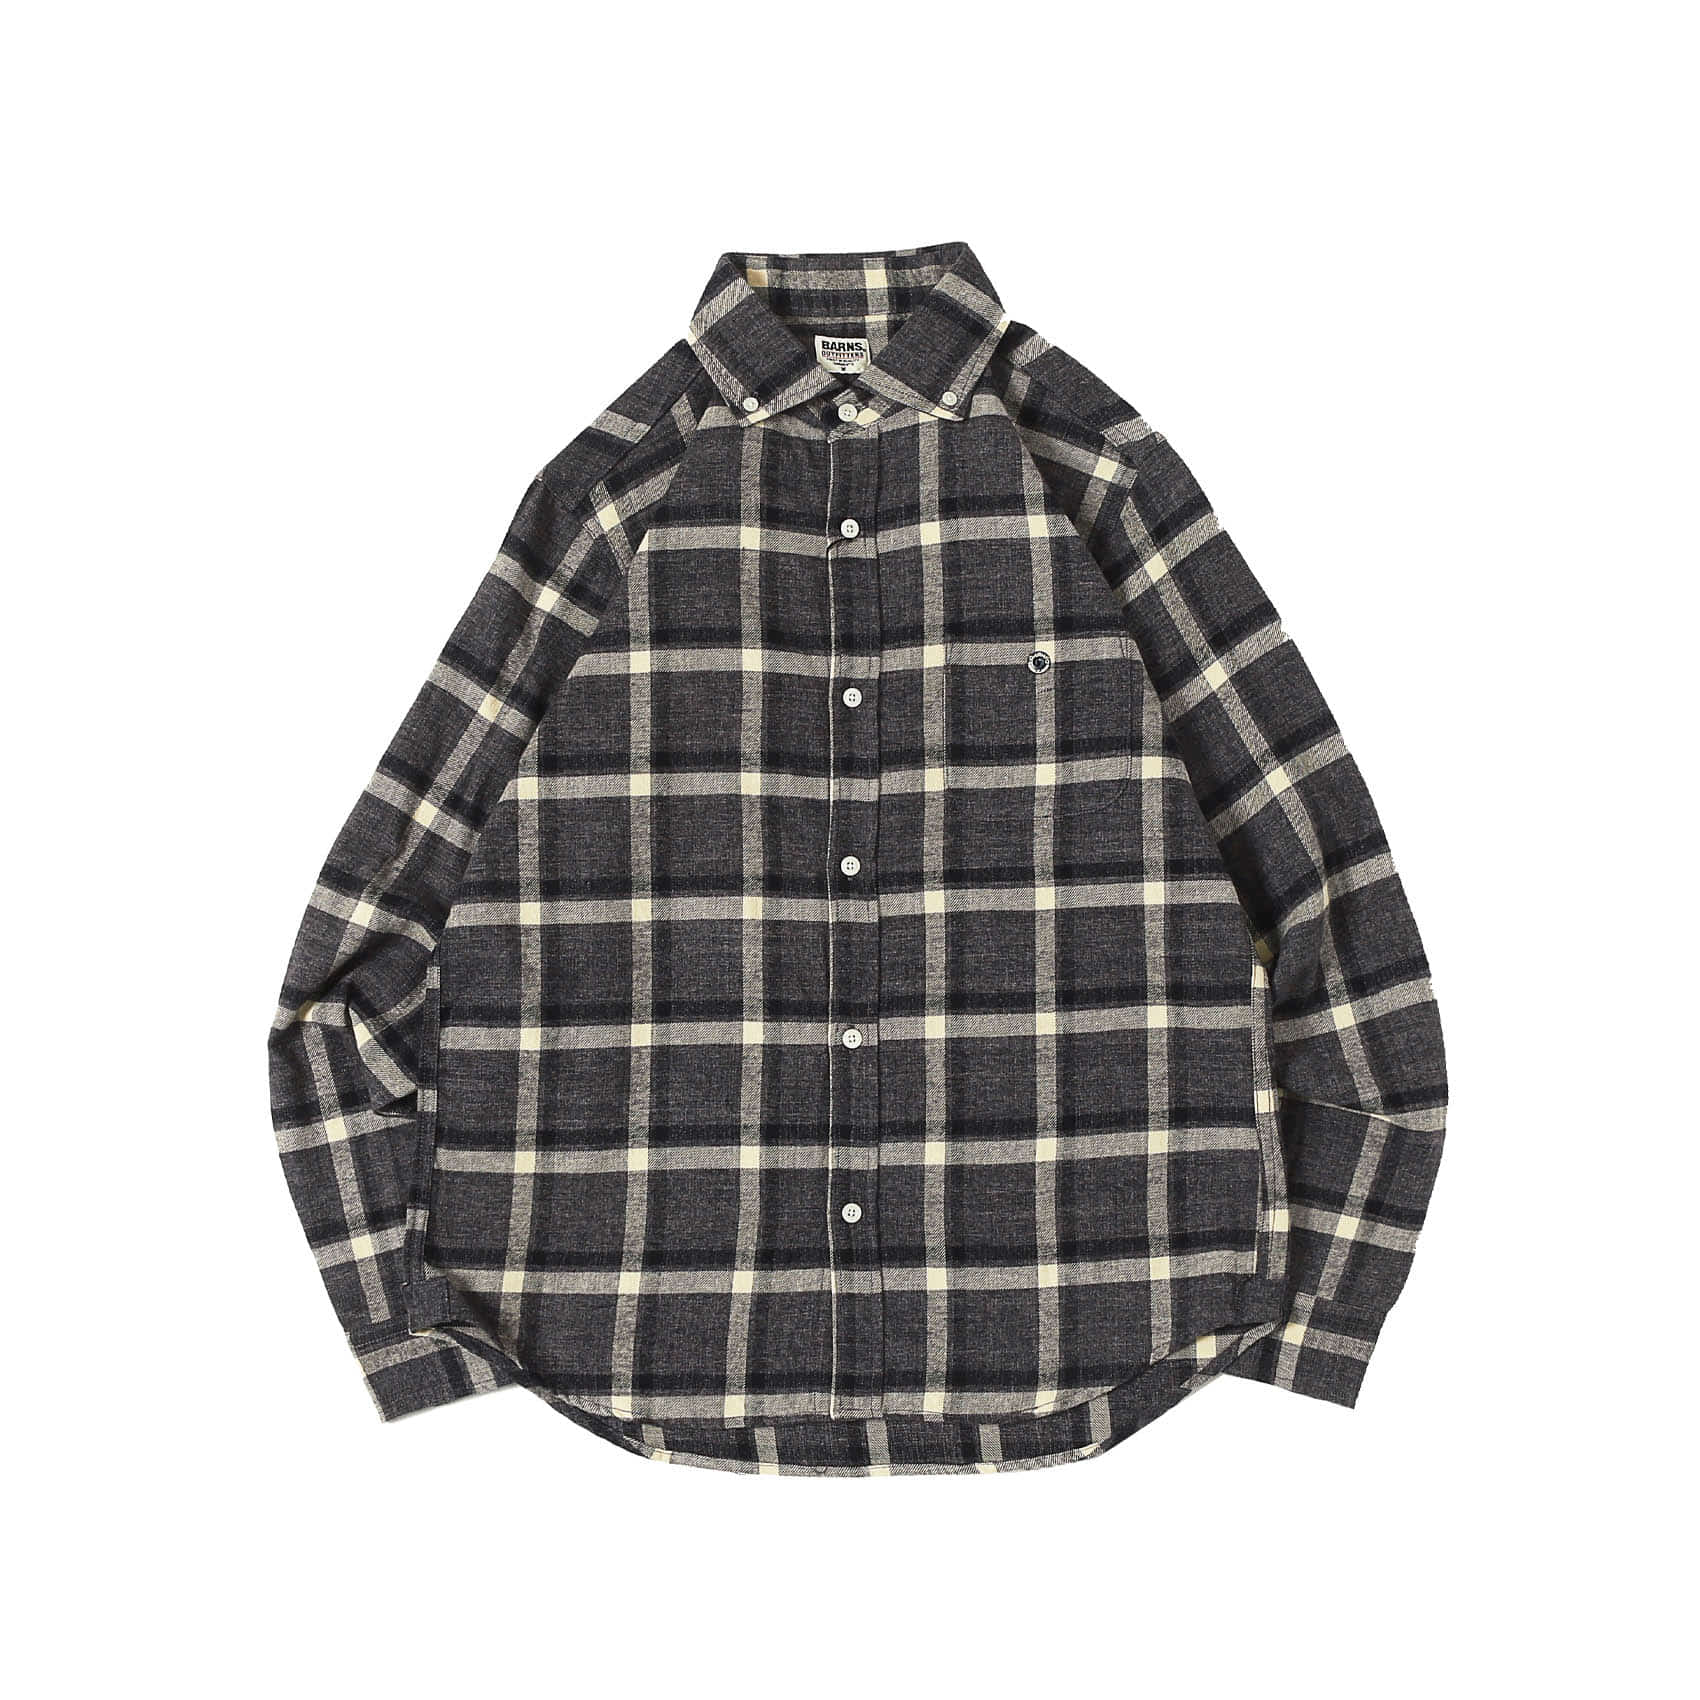 L/S CHECK BUTTON DOWN SHIRT - GREY (BR8526)